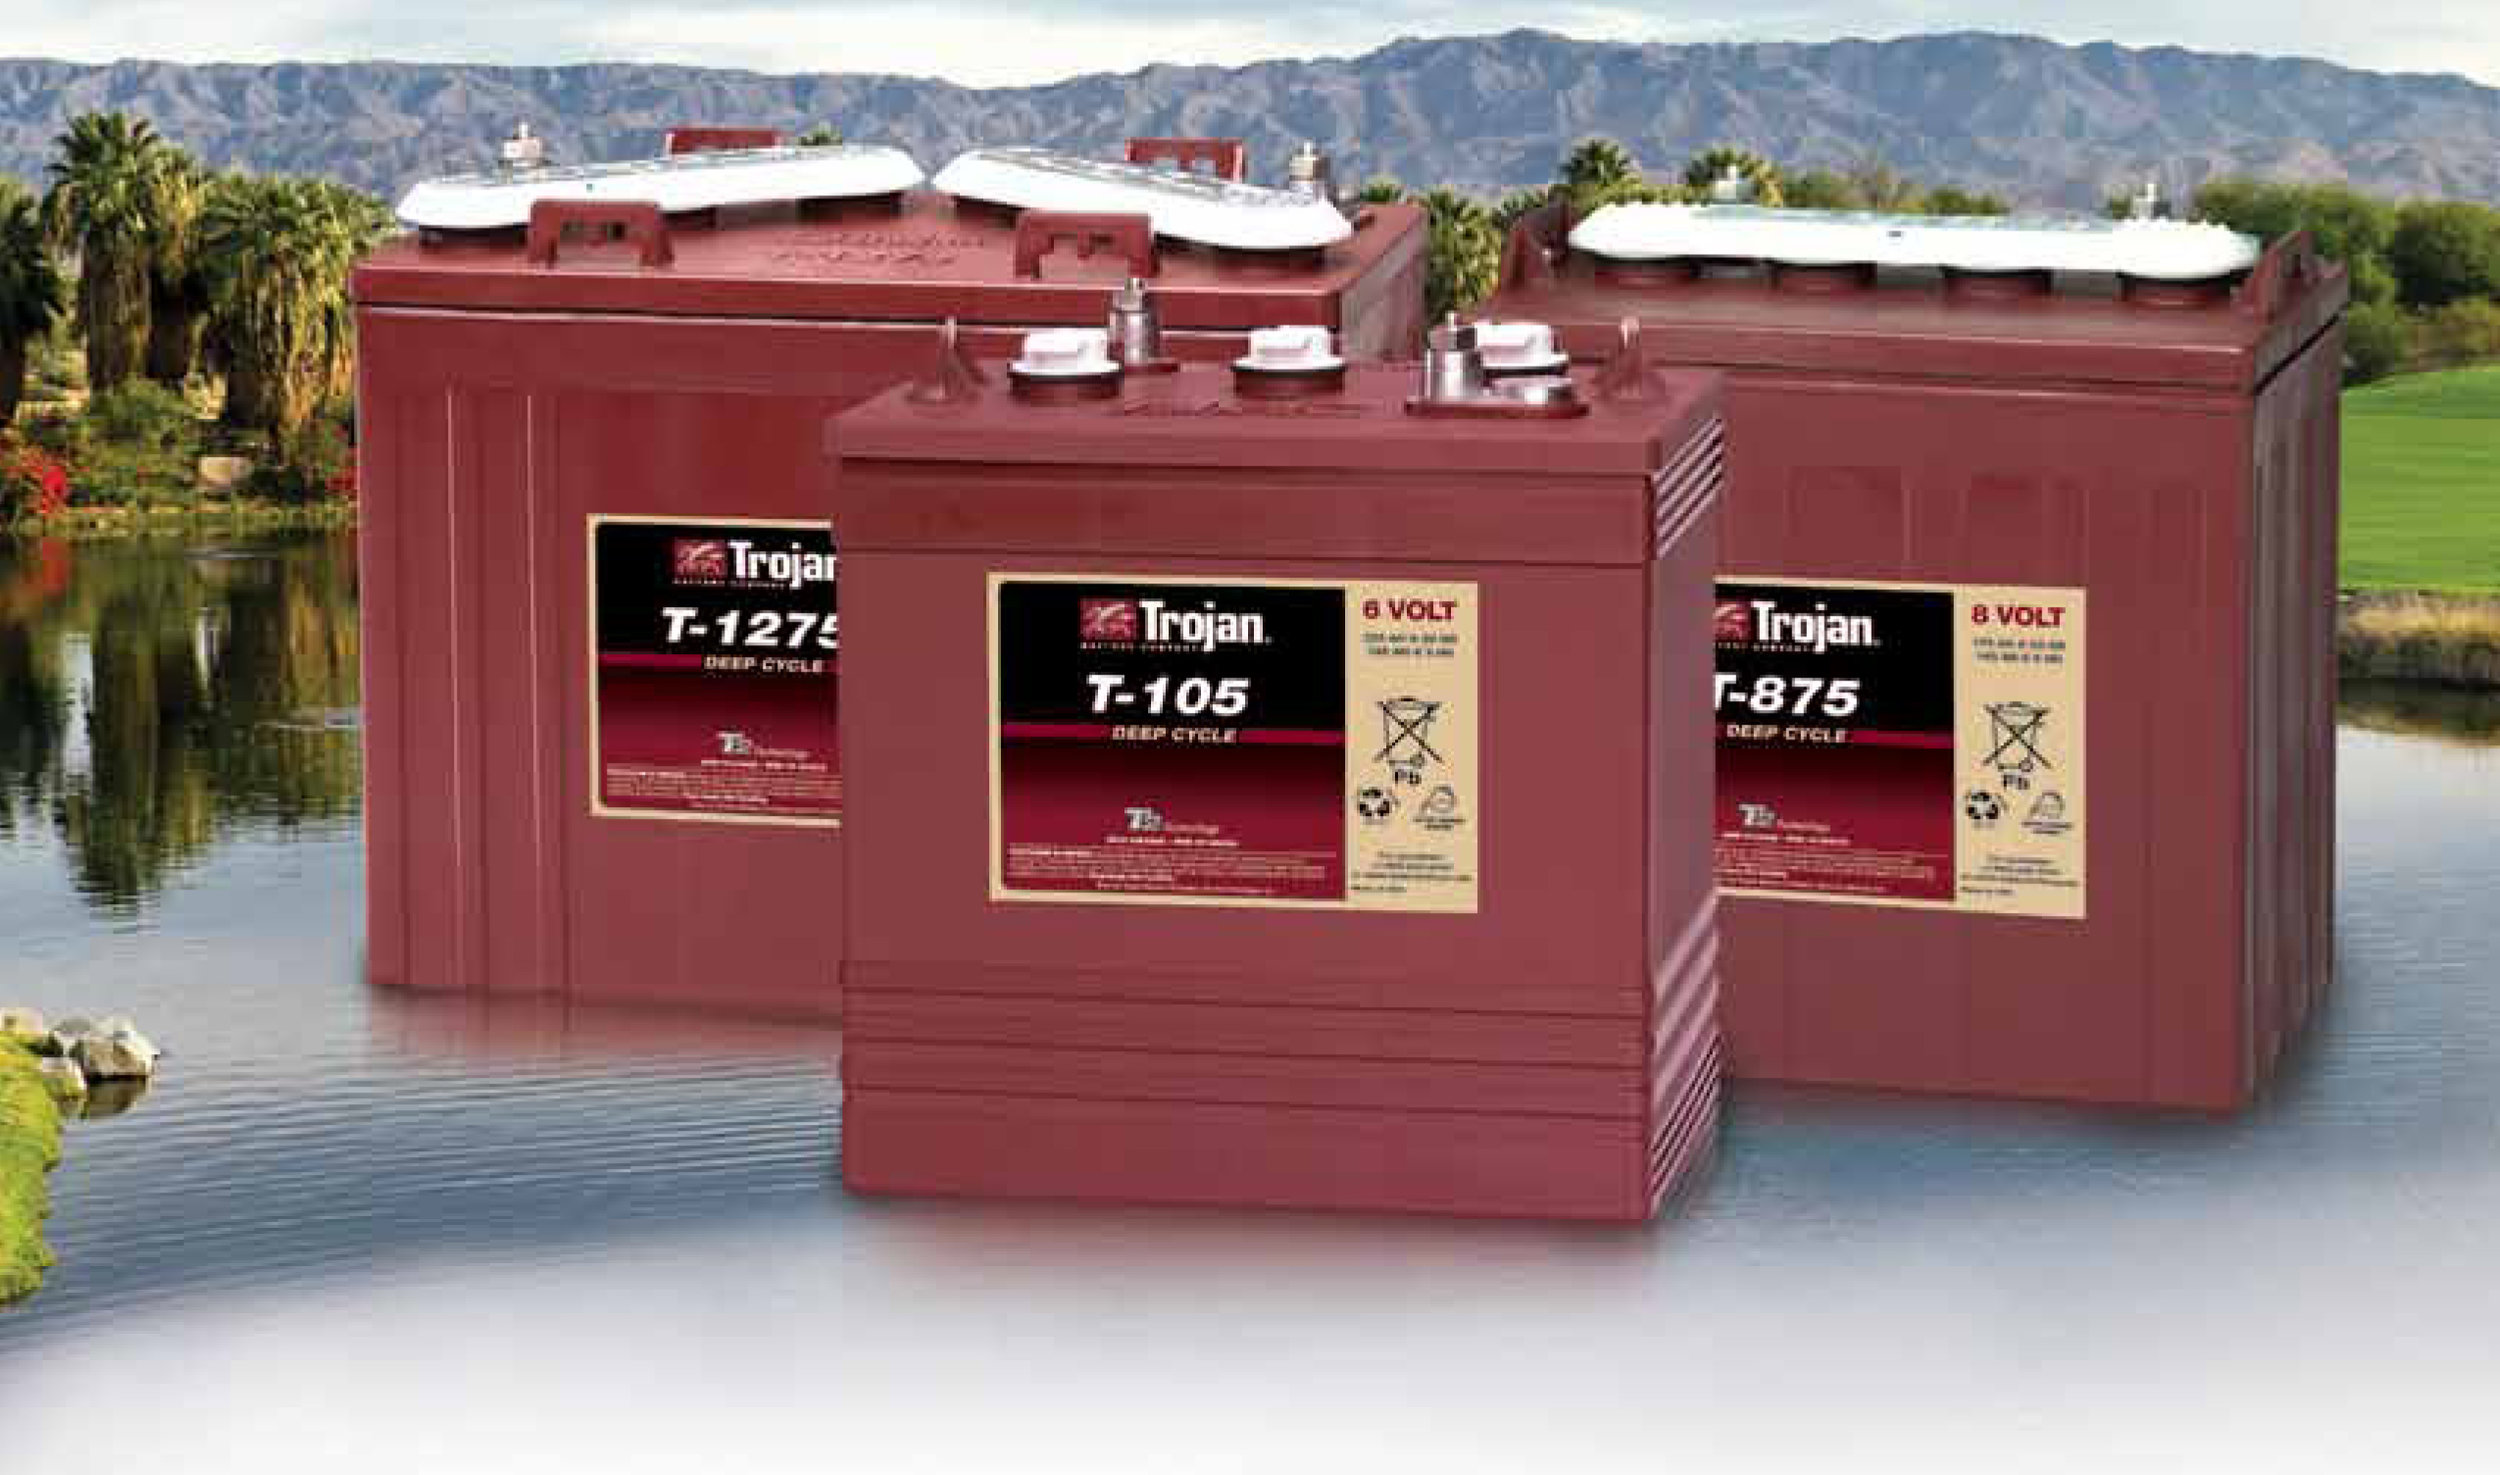 - Get in the swing of things with Trojan deep cycle batteries for your Golf cart. 6V, 8V, or 12 Volt no problem, we have them all.